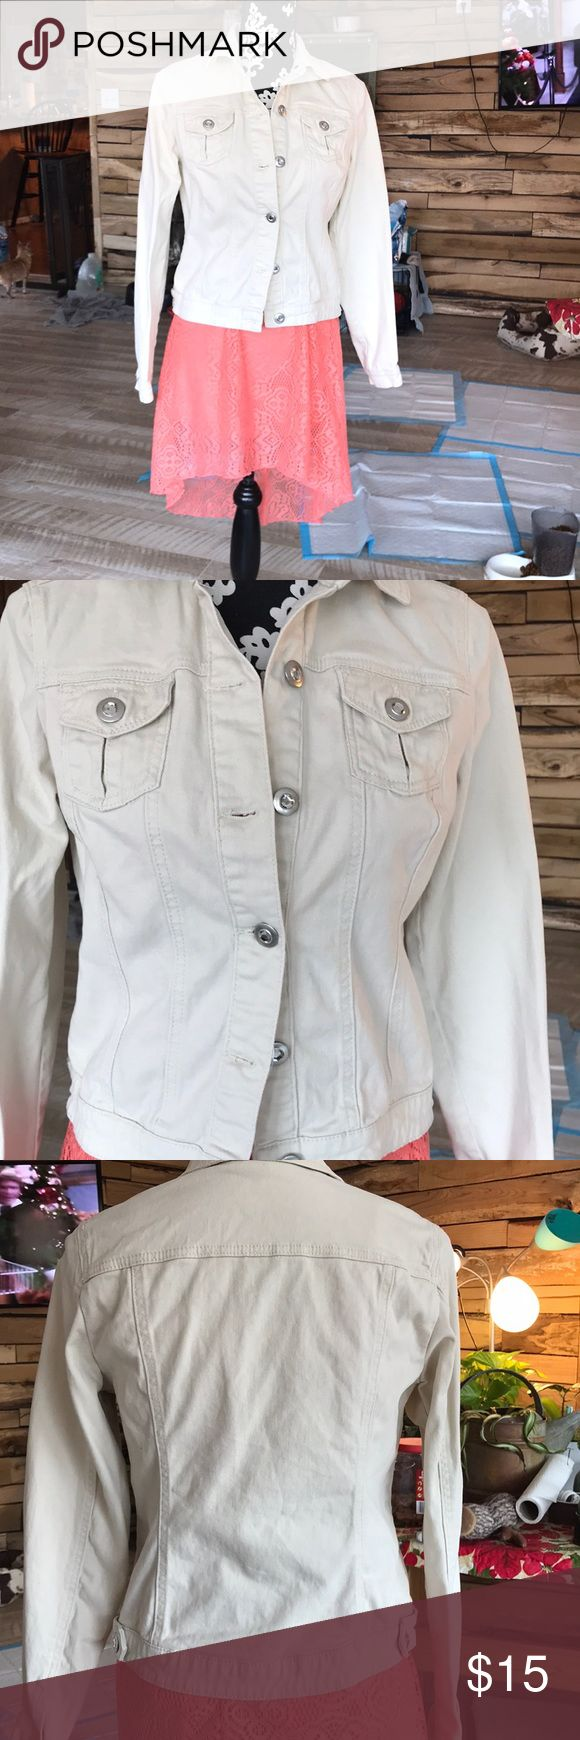 Cream jewel button jacket/cardigan This jacket is a collared cream colored one. It'd go perfect with a pink dress or a salmon colored dress. It has two chest pockets. No stains tears or holes. Only worn once to a party. baccini Jackets & Coats Jean Jackets